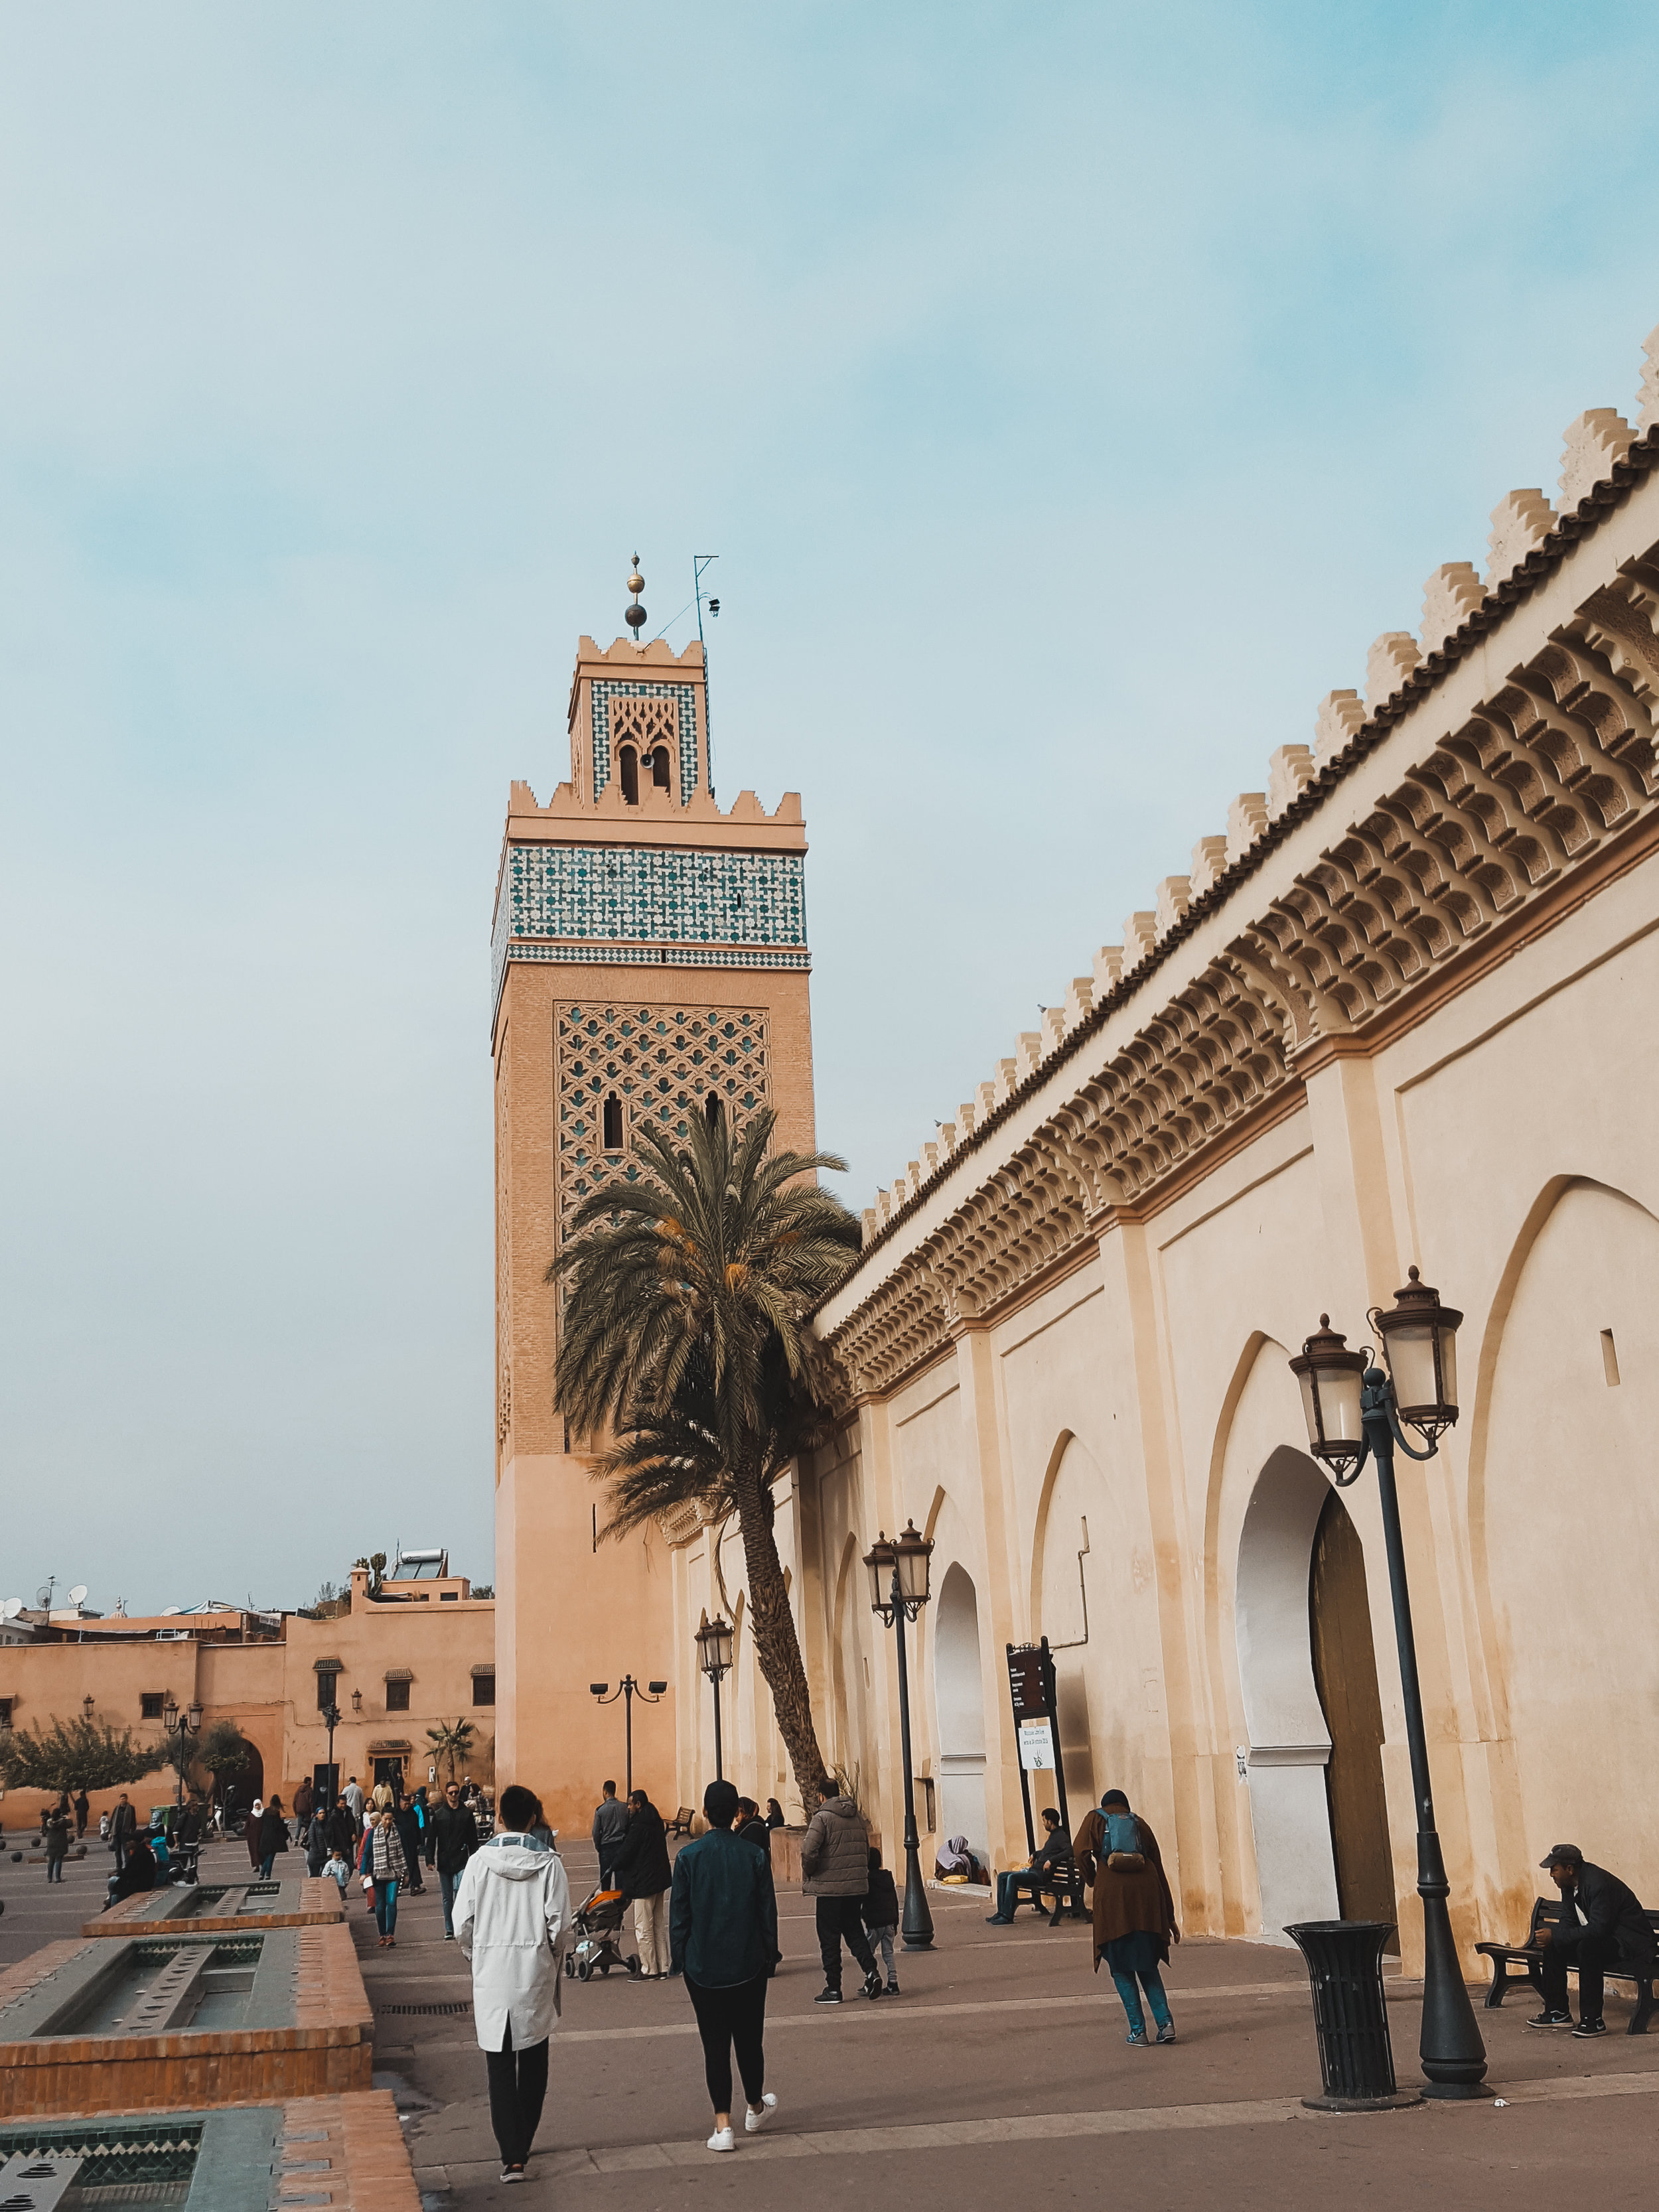 The Moulay El Yazid Mosque and the Saadian Tombs are right next to each so make sure you don't miss one of them!